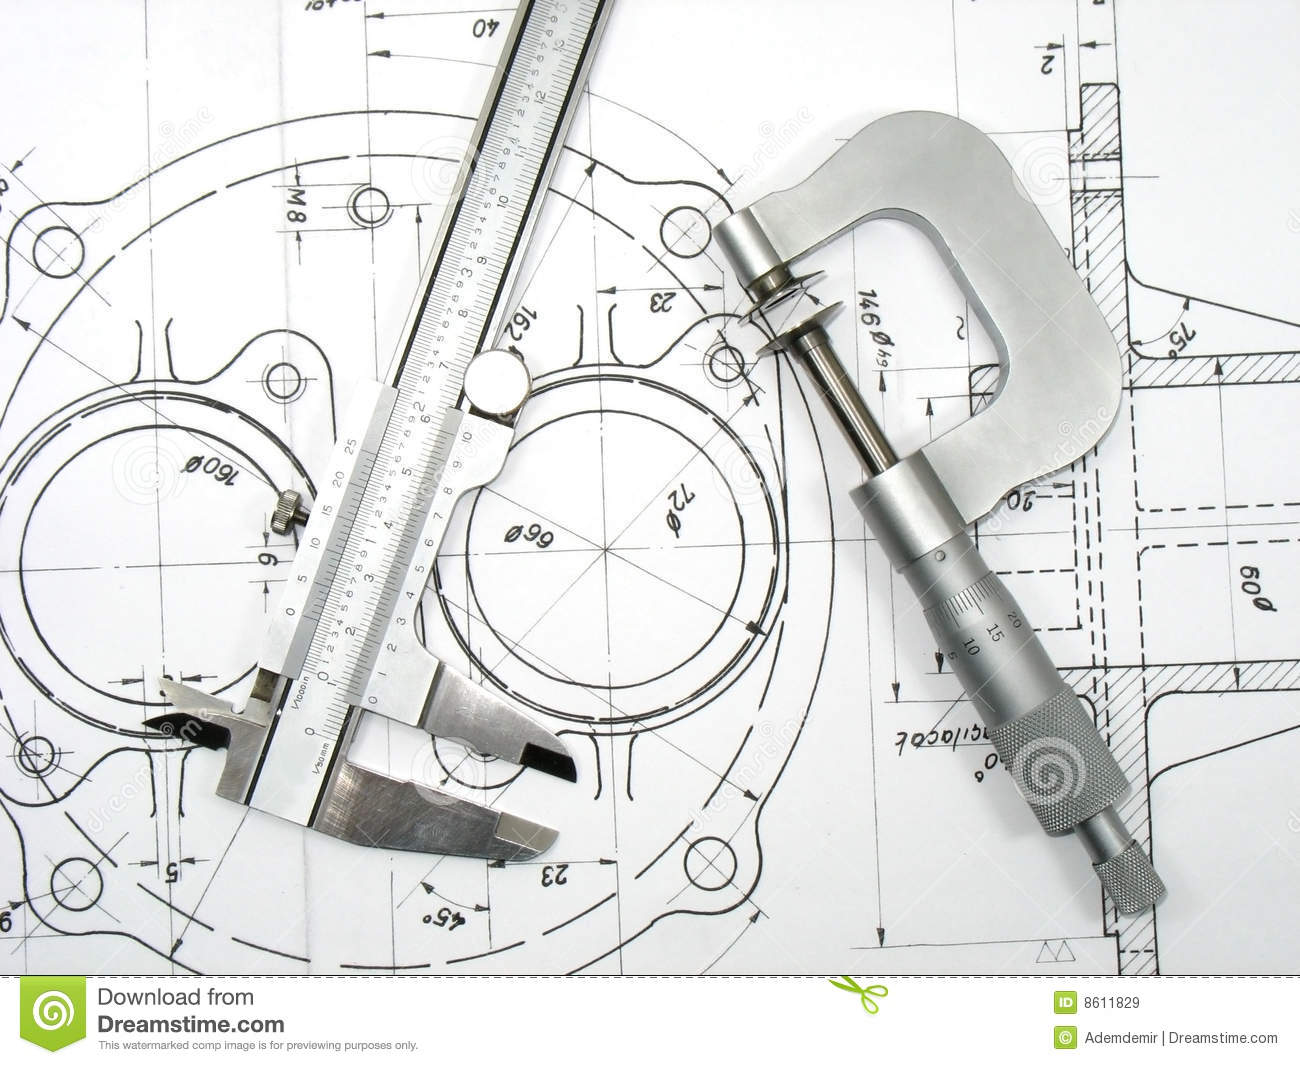 Caliper and Micrometer on technical drawings